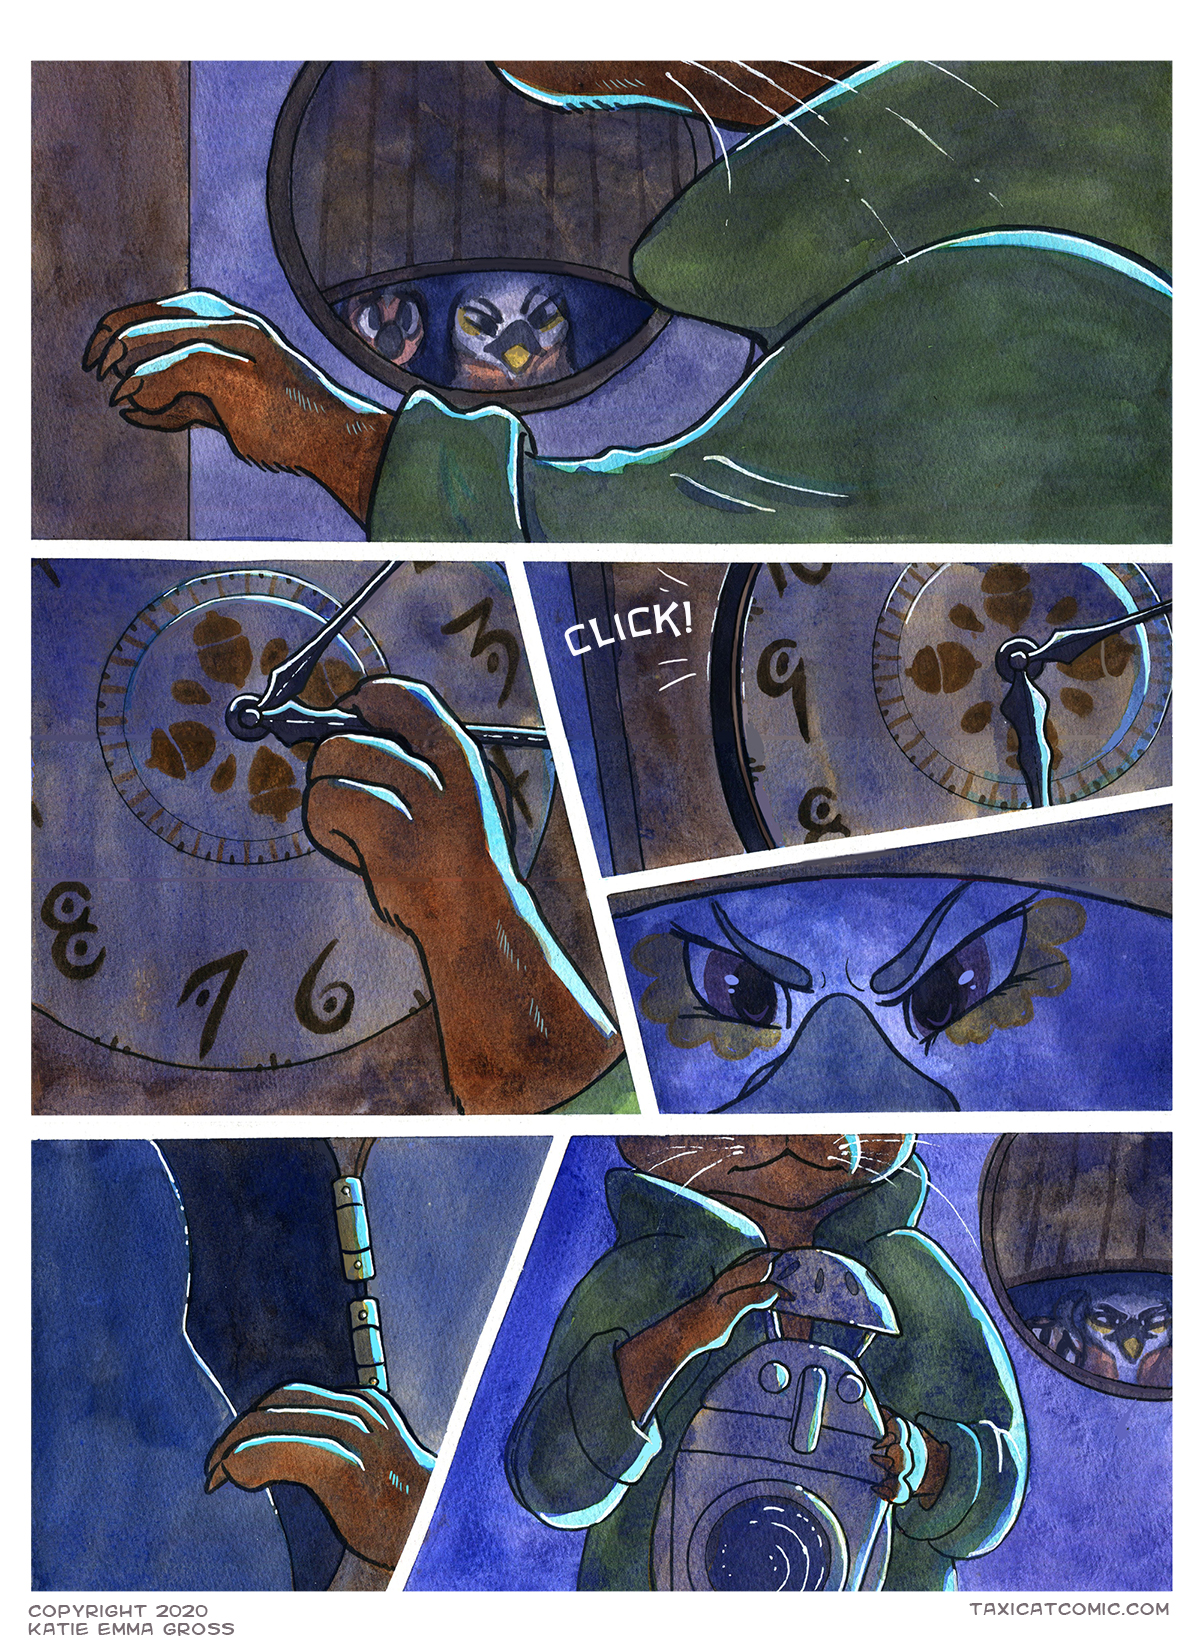 I keep ALL my secret, possibly illegal treasures inside my clock! Don't you?